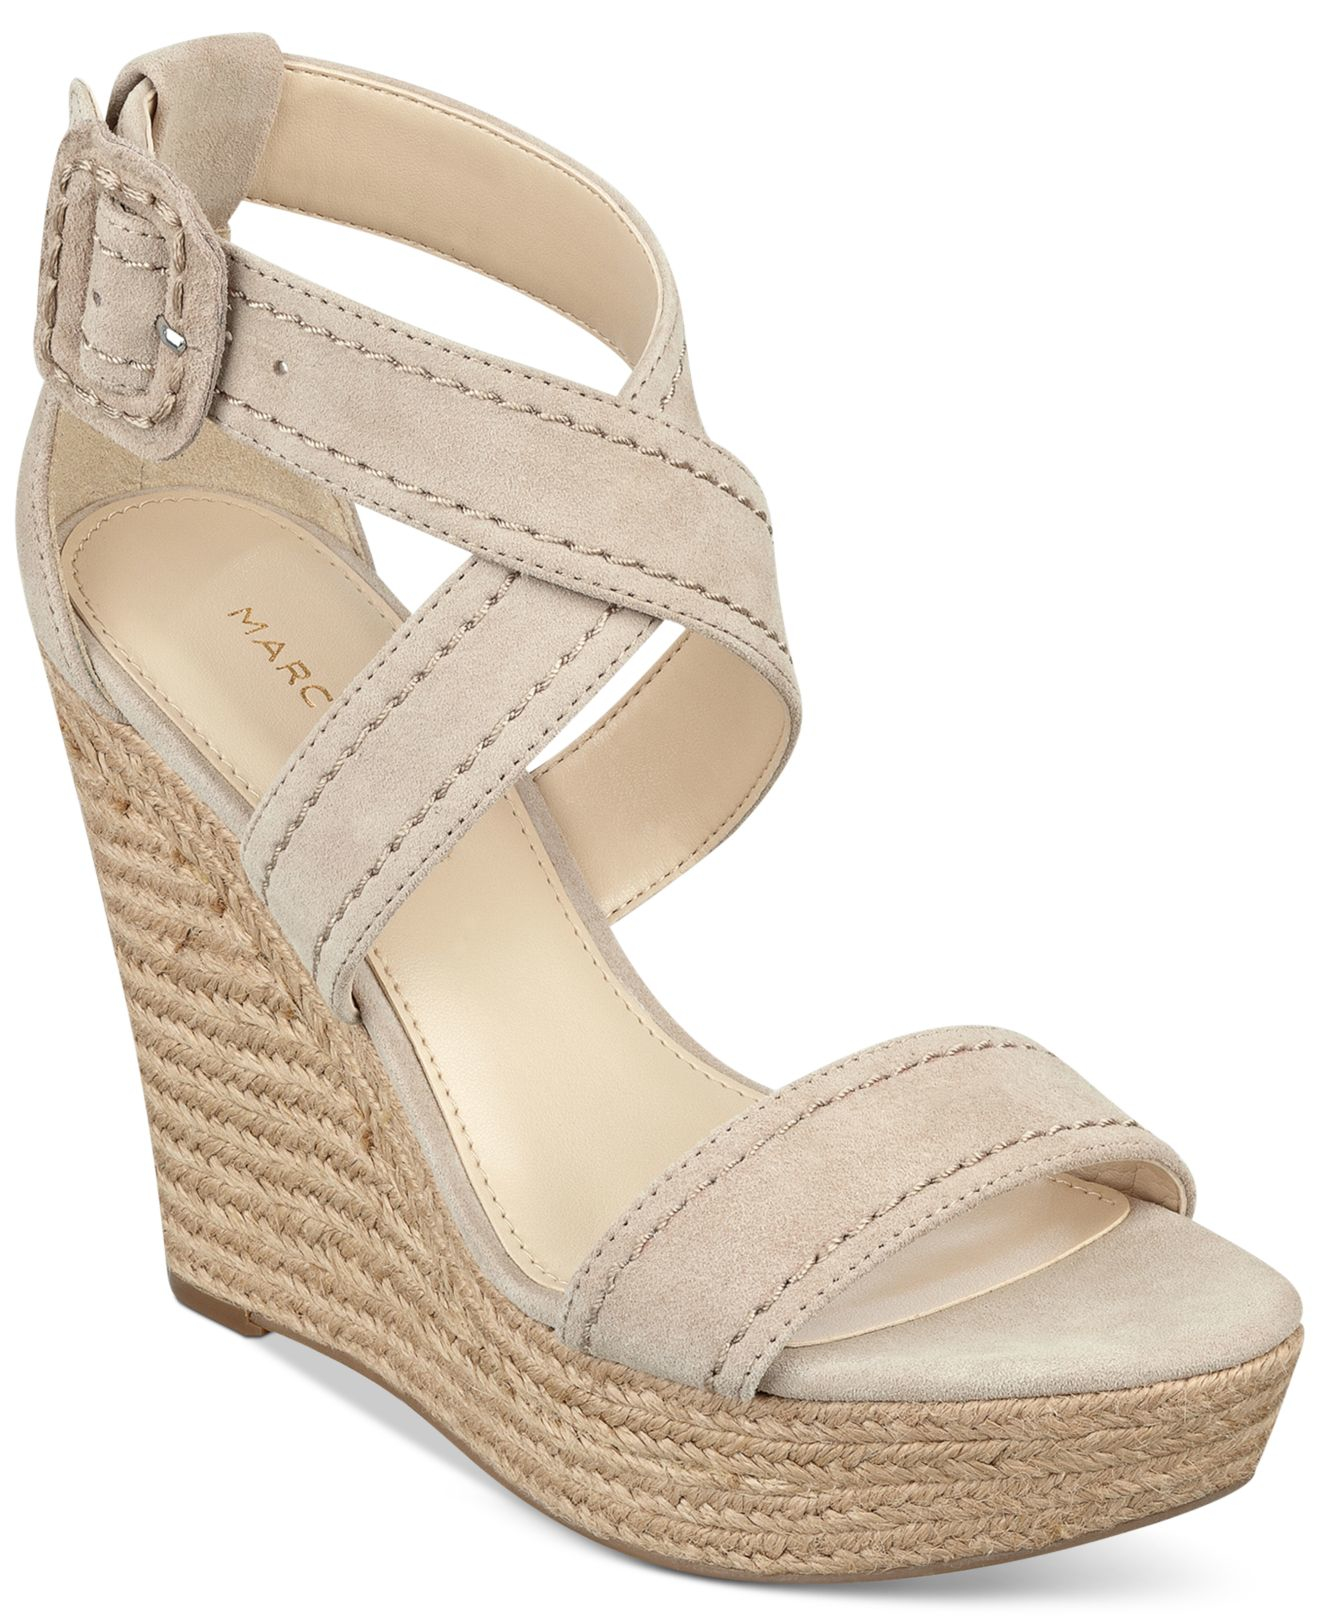 5beffed59c70 Lyst - Marc Fisher Haely Platform Wedge Sandals in Natural